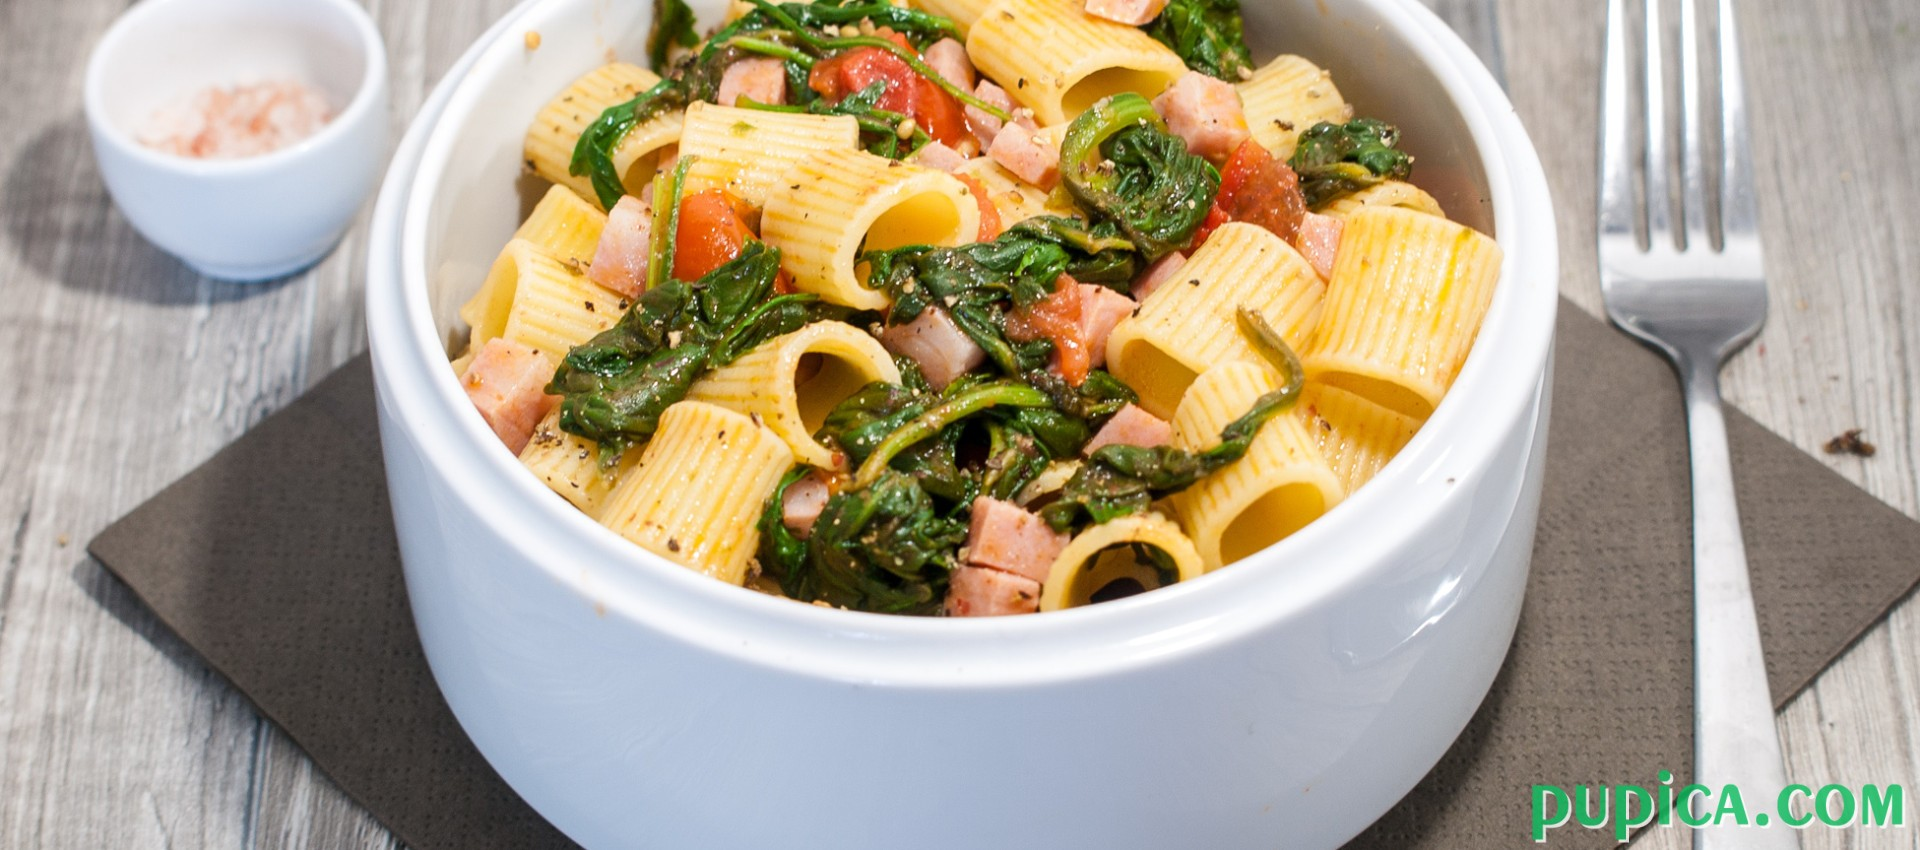 Pasta with baby spinach, tomatoes and Italian sausage